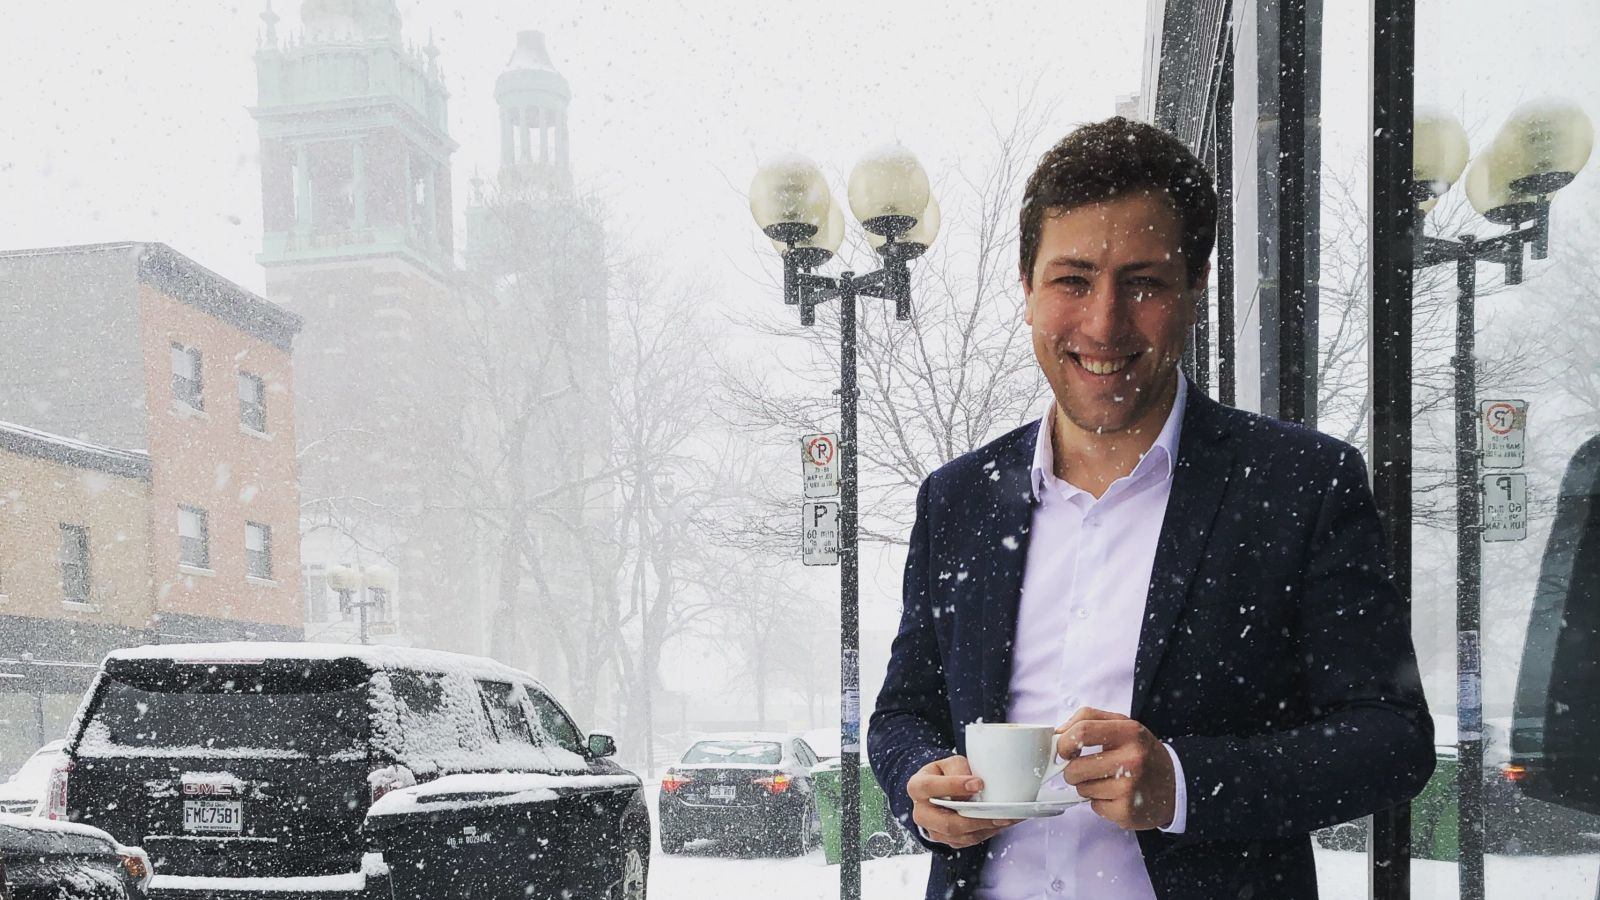 Hamish McConnochie Organizational Design Consultant Deloitte Canada in Montréal in the snow with a cup of coffee